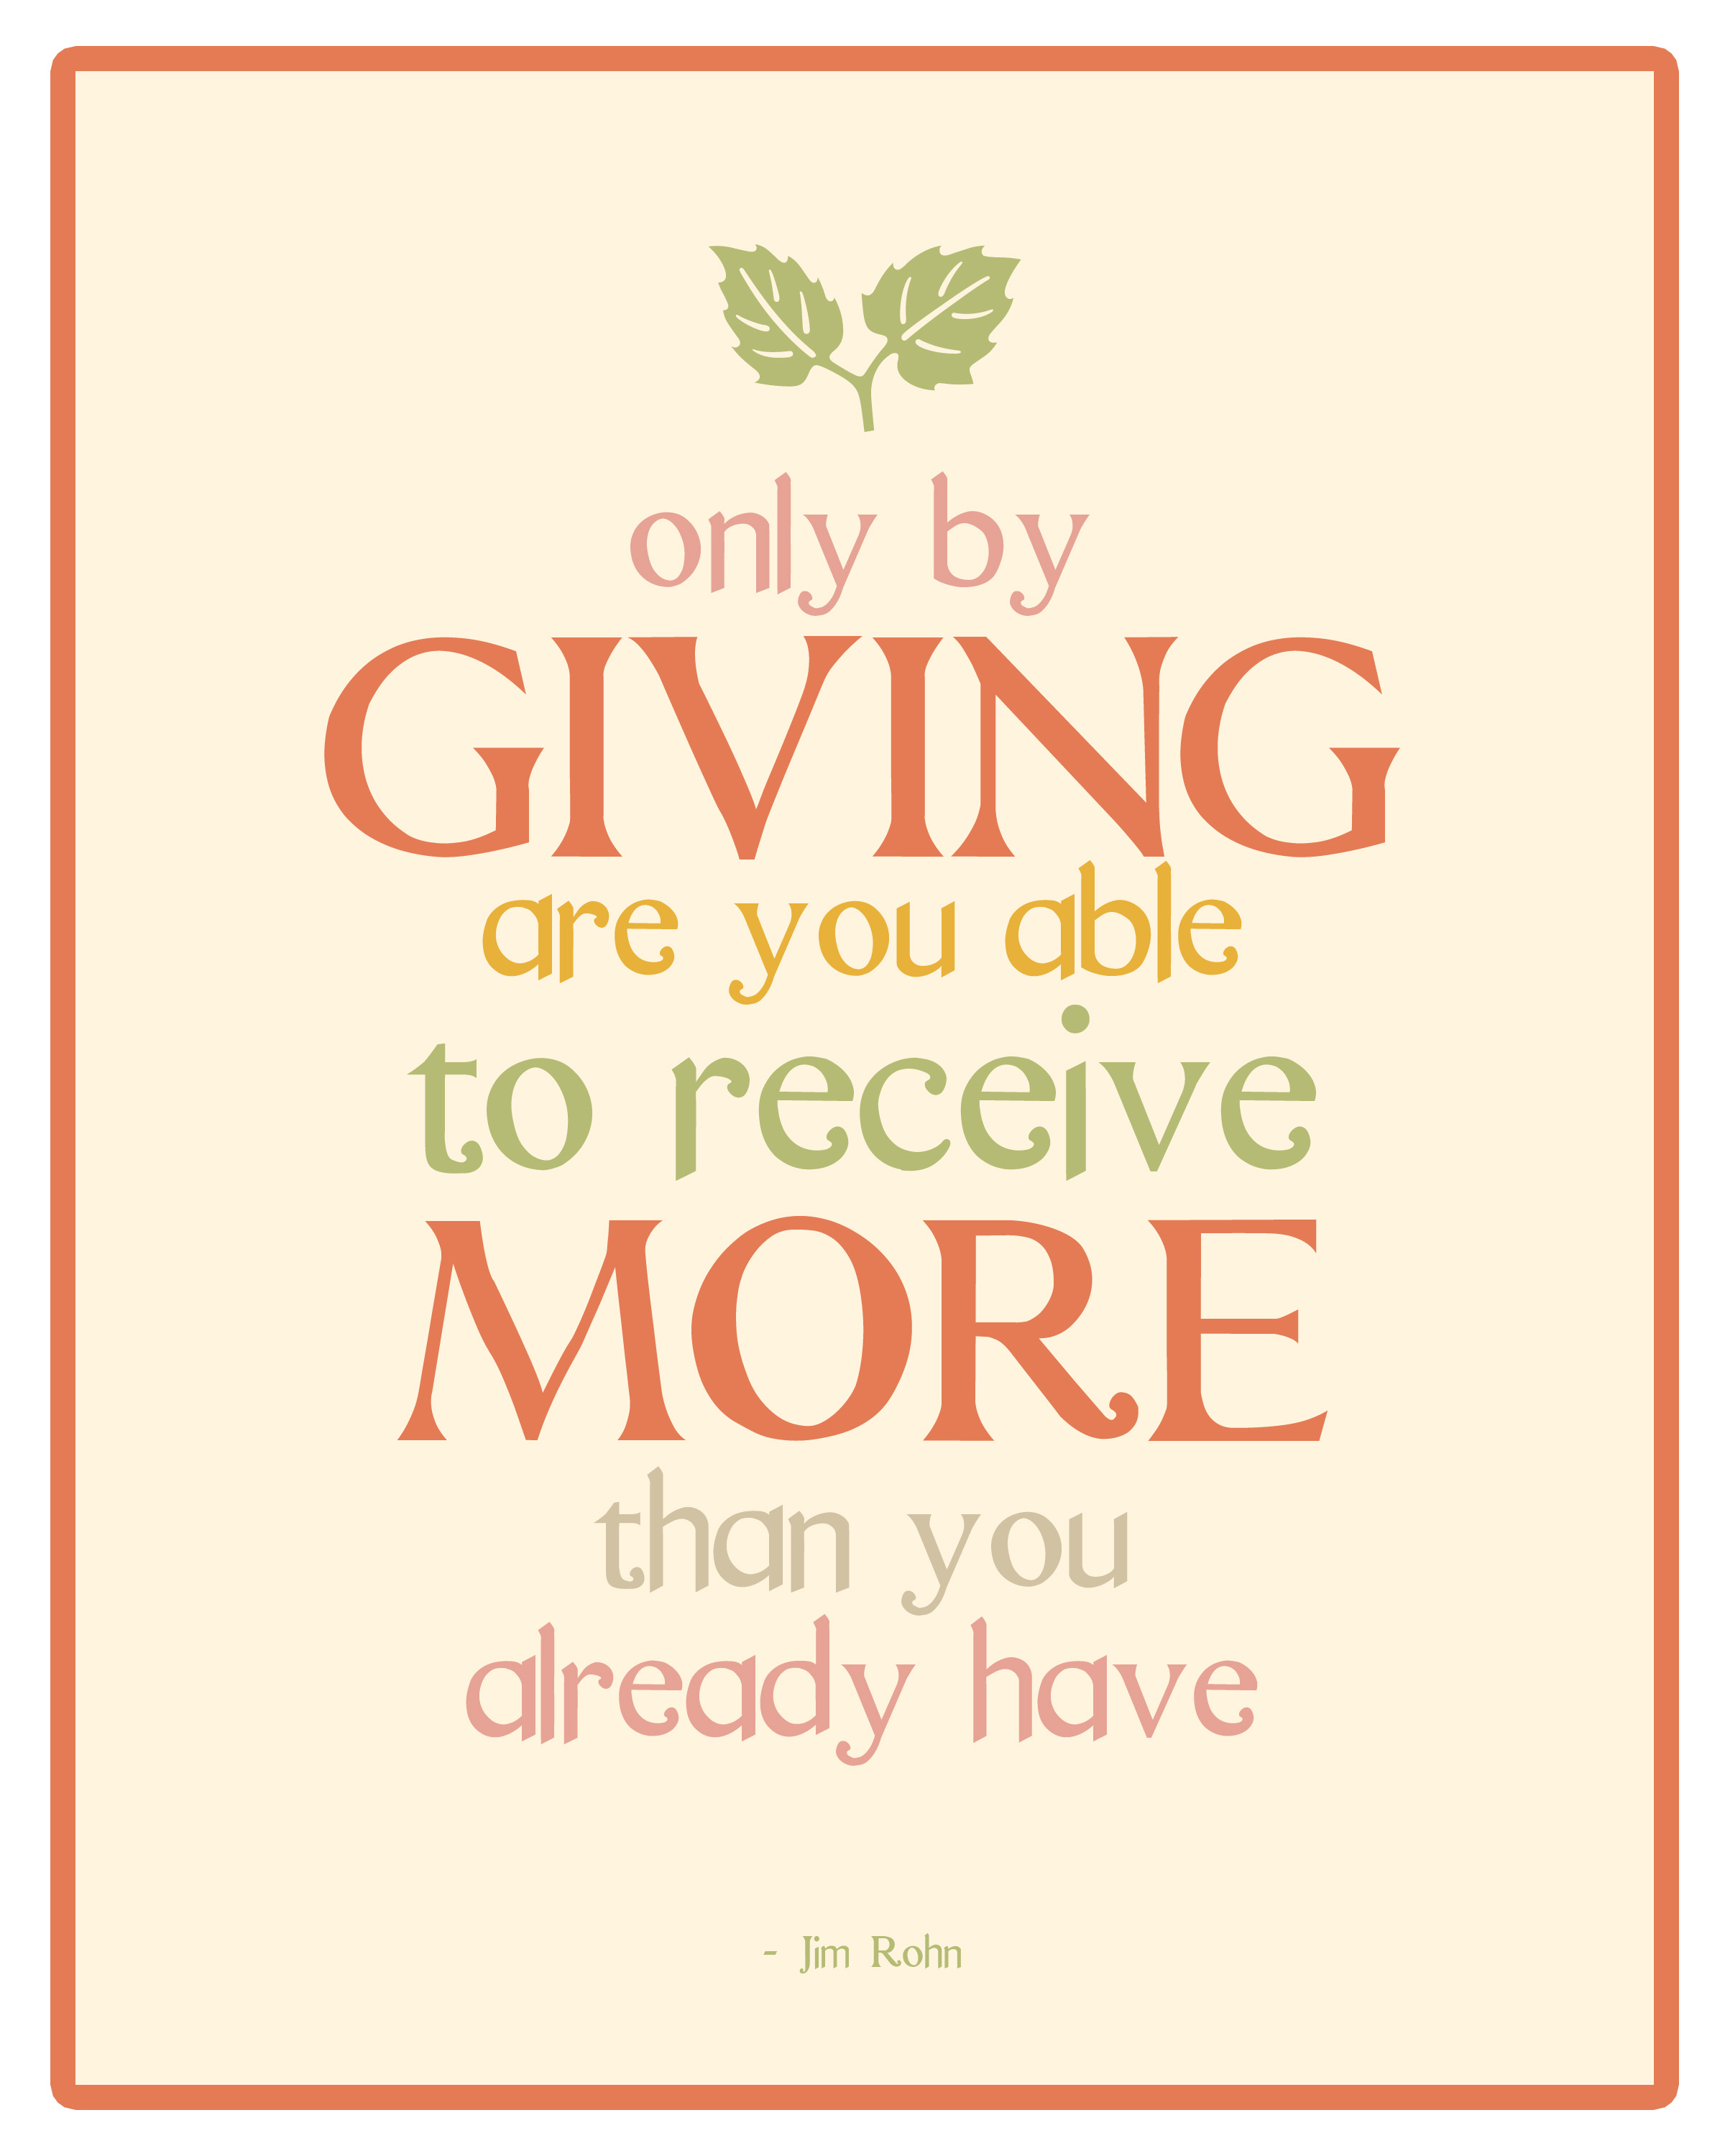 Donation Quotes Givingquotes3  The Emporium